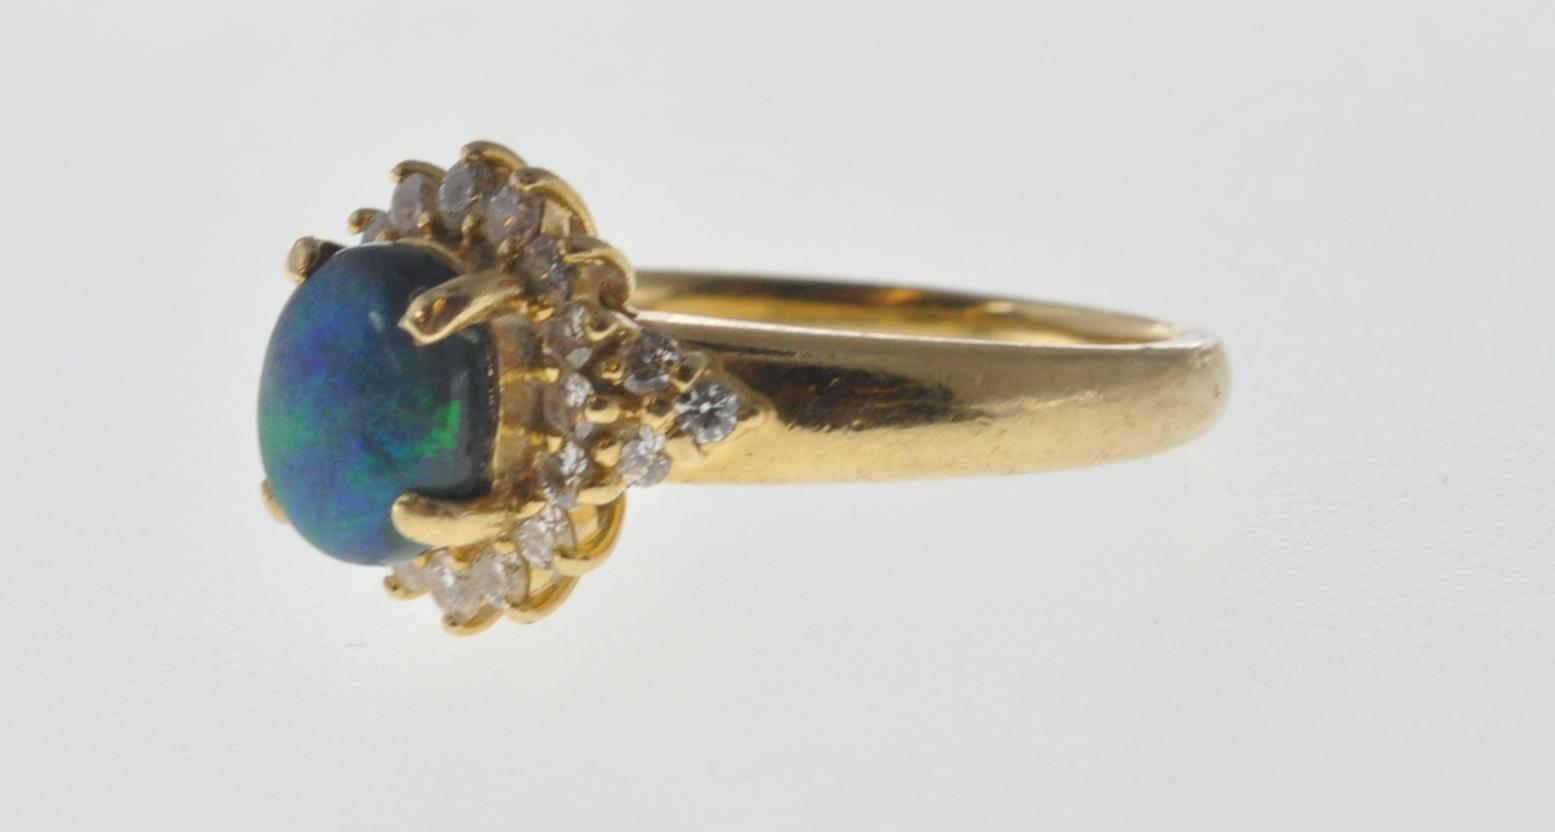 18CT GOLD BLACK OPAL AND DIAMOND RING - Image 3 of 7